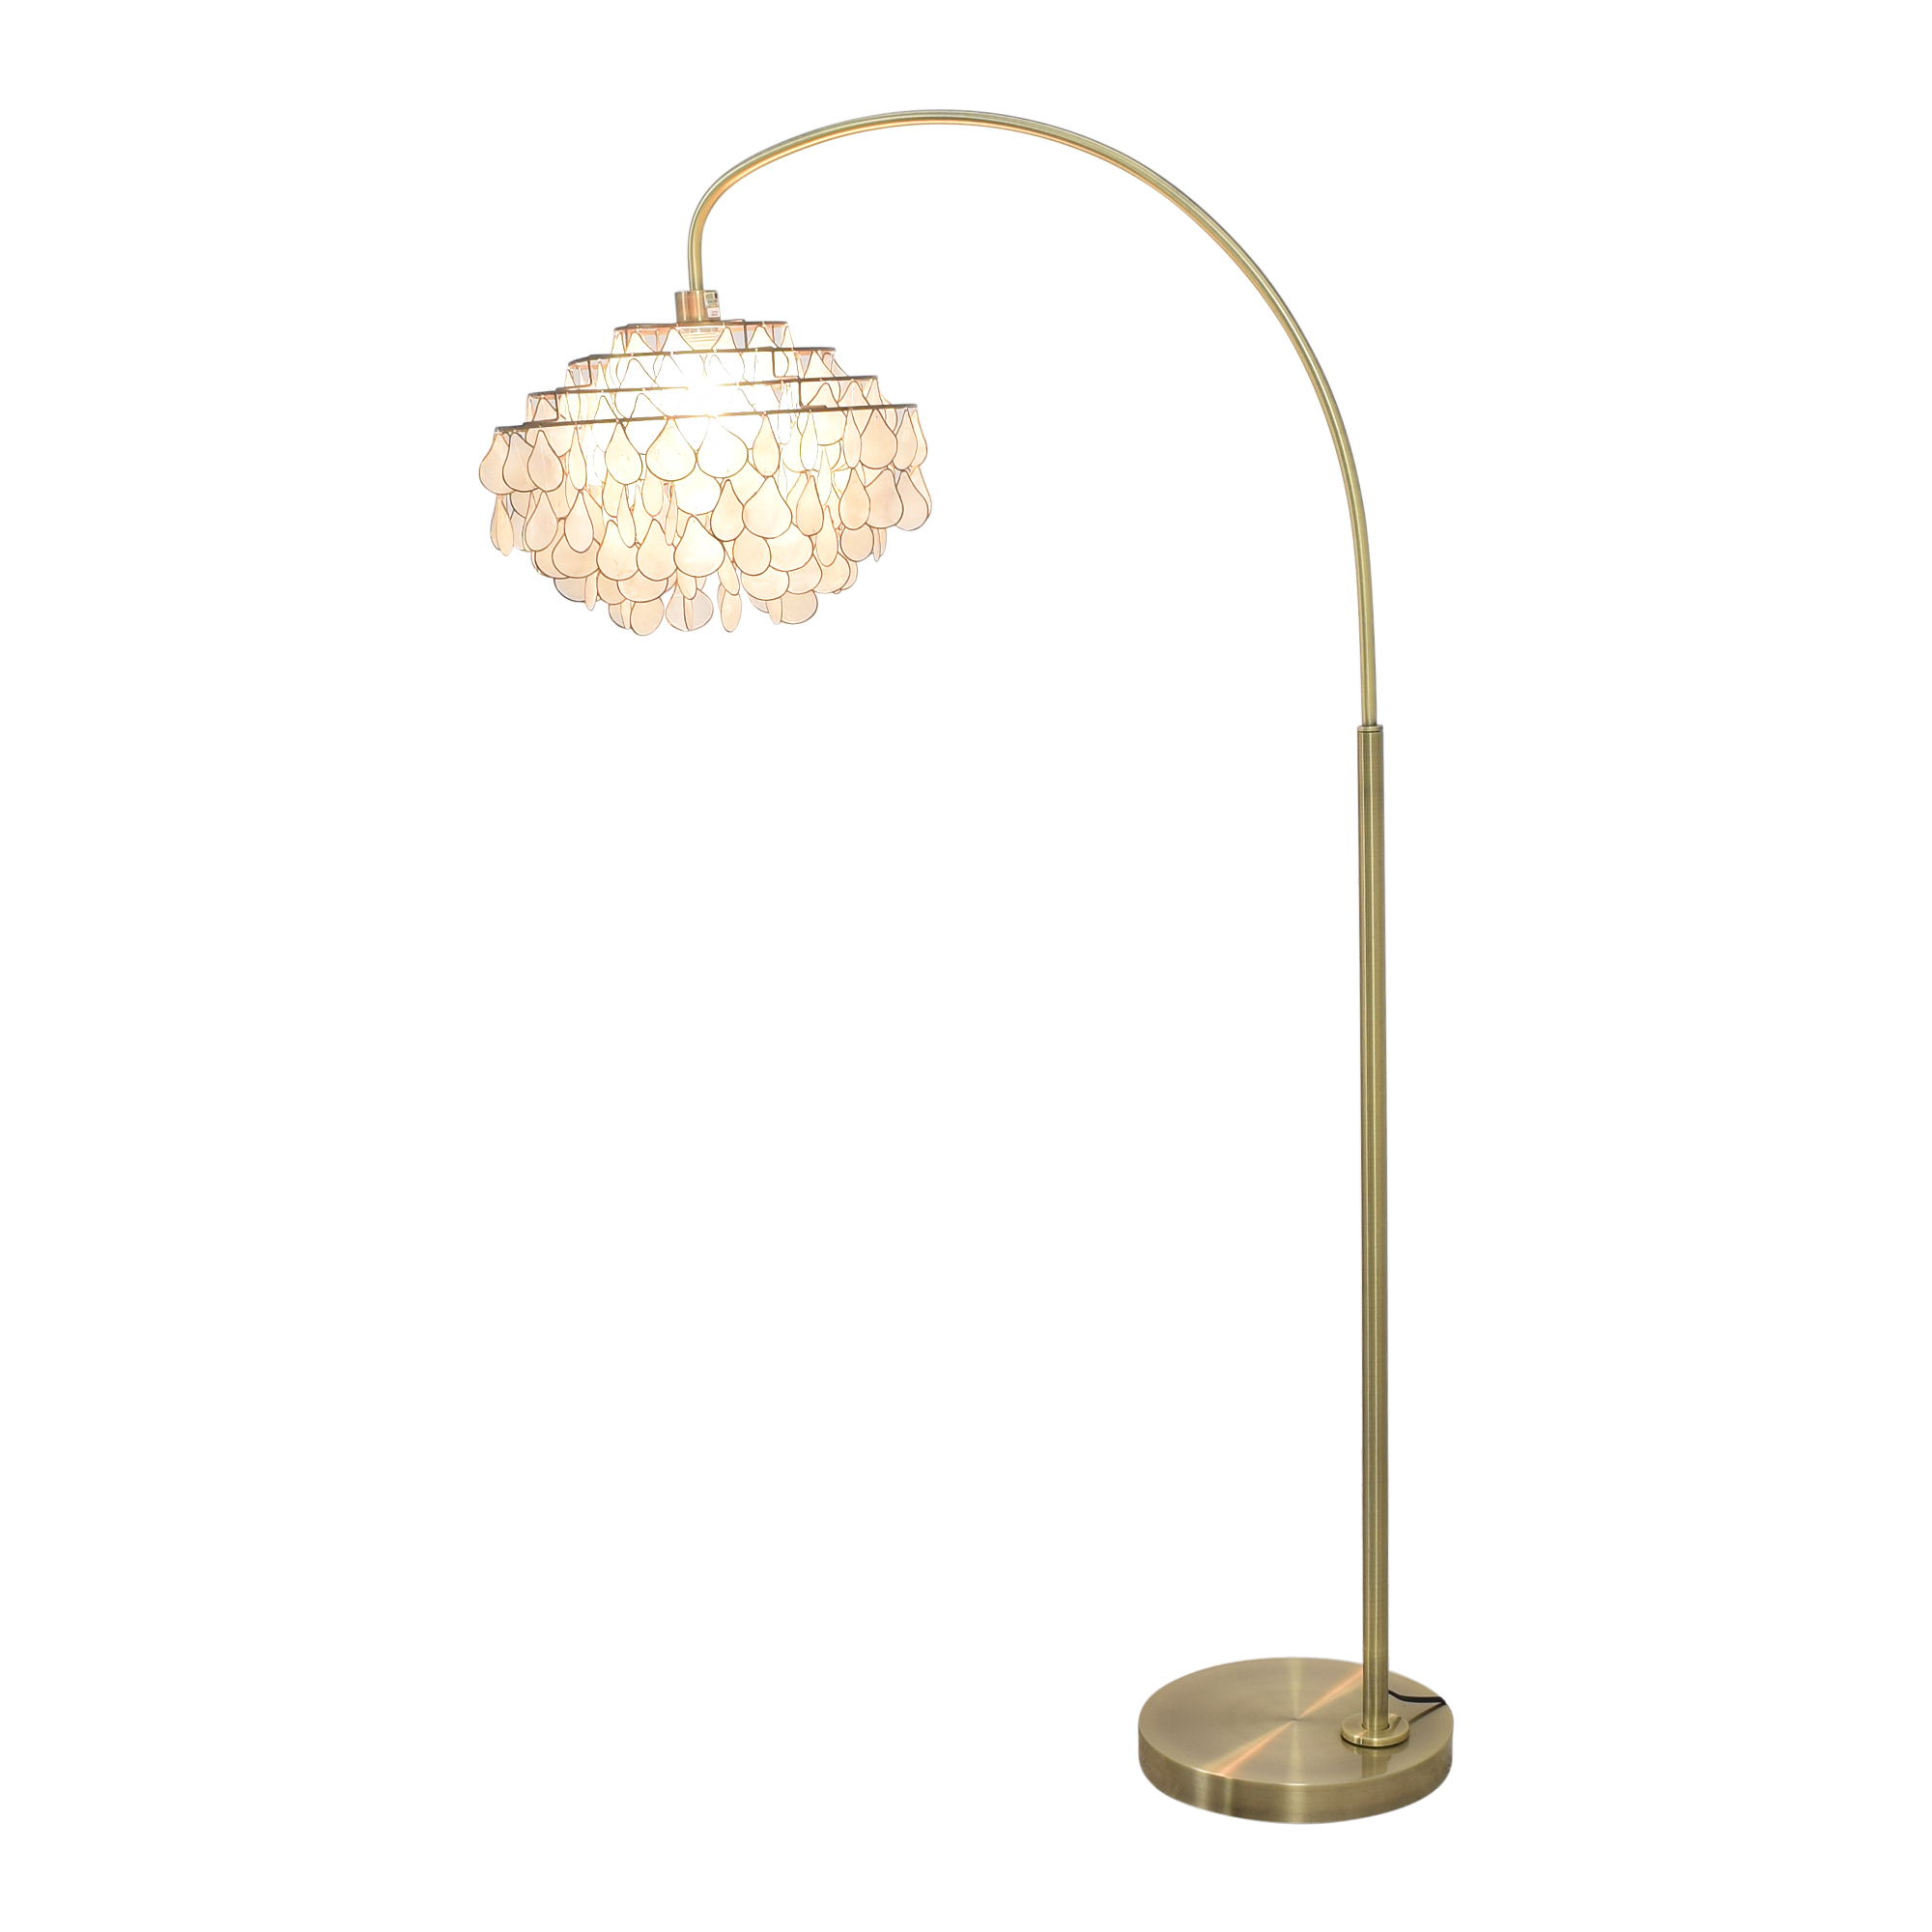 Floor Lamp with Tear-Drop Shade second hand